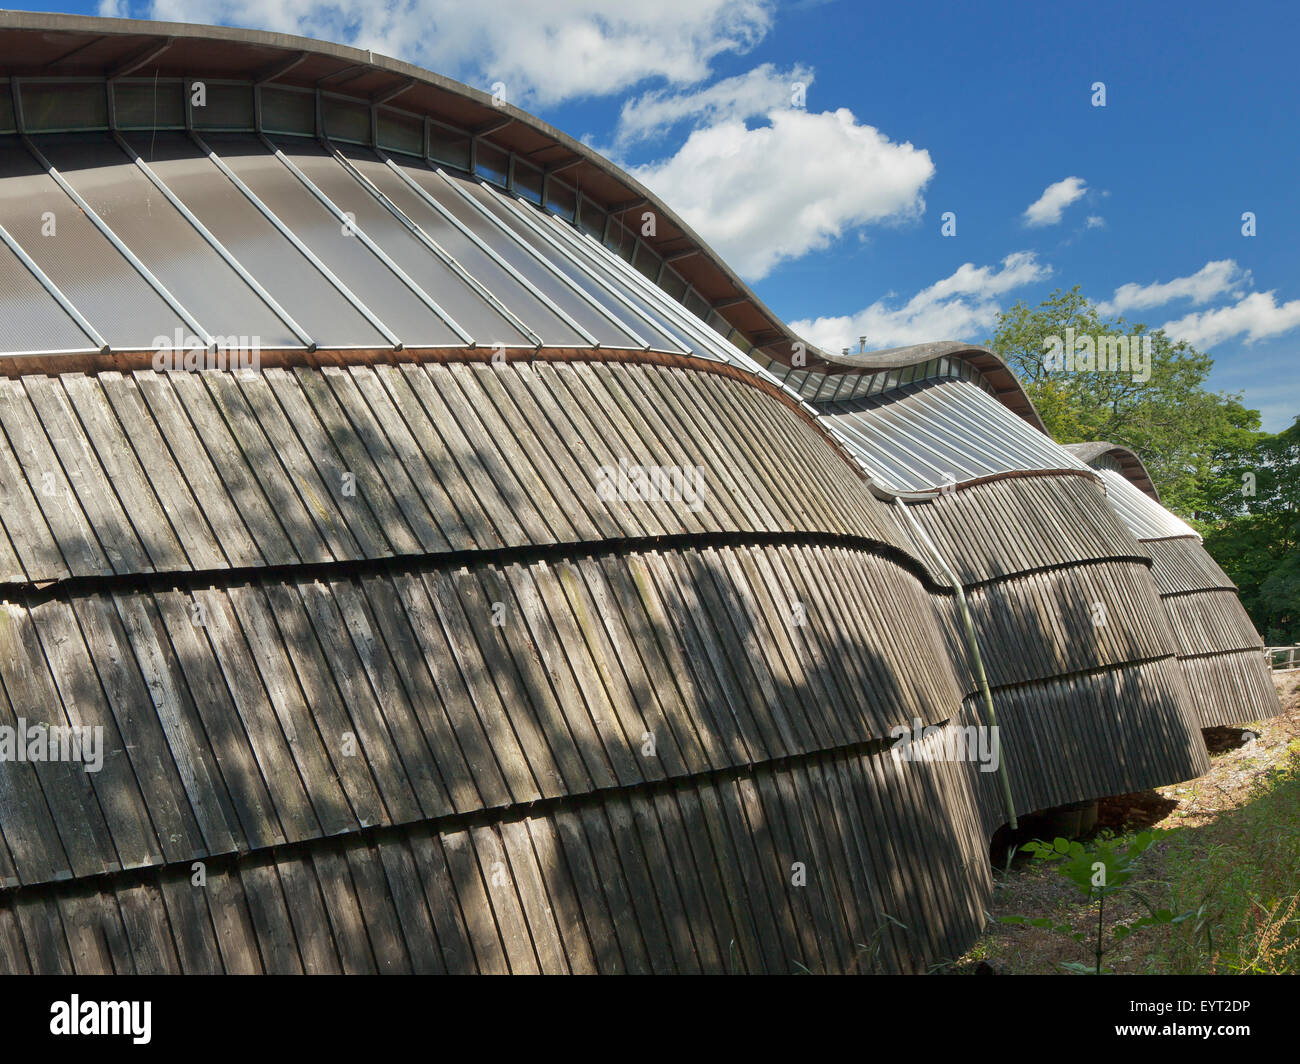 The Gridshell Building at the The Weald and Downland Open Air Museum, Singleton, West Sussex. - Stock Image